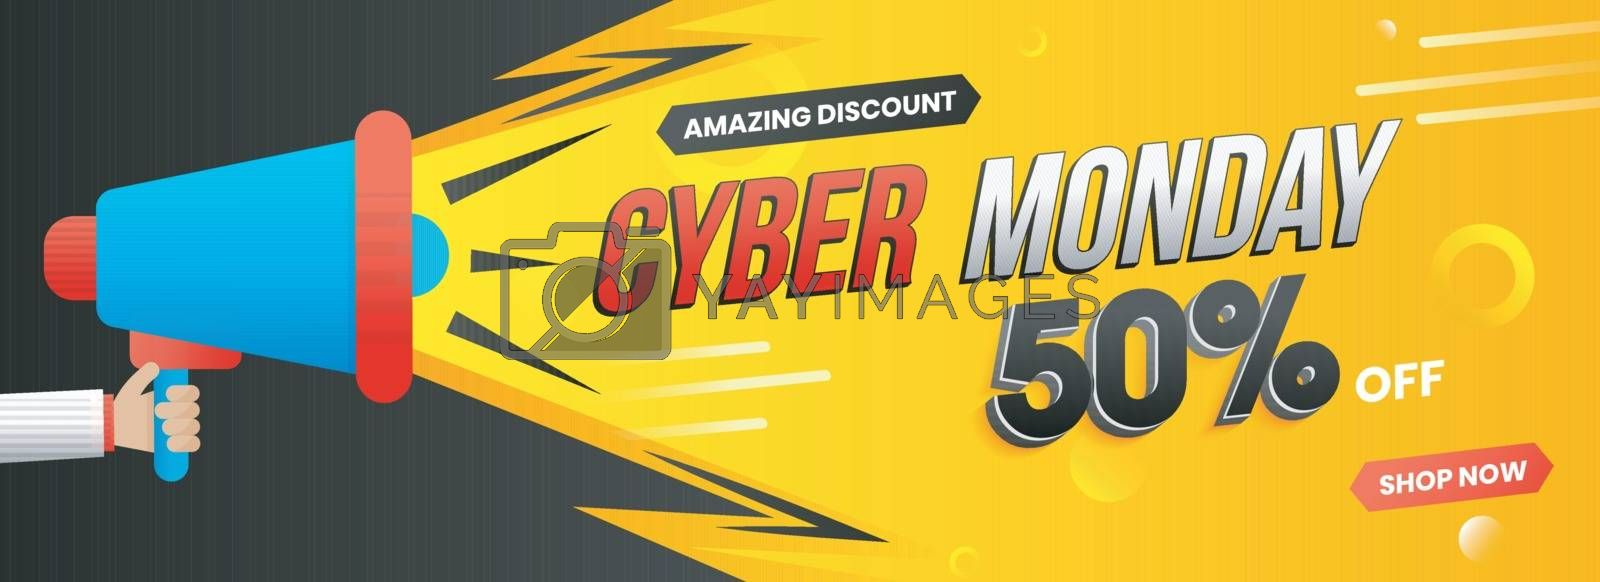 Hand holding megaphone for advertising concept, website banner design with 50% discount offer for Cyber Monday Sale.